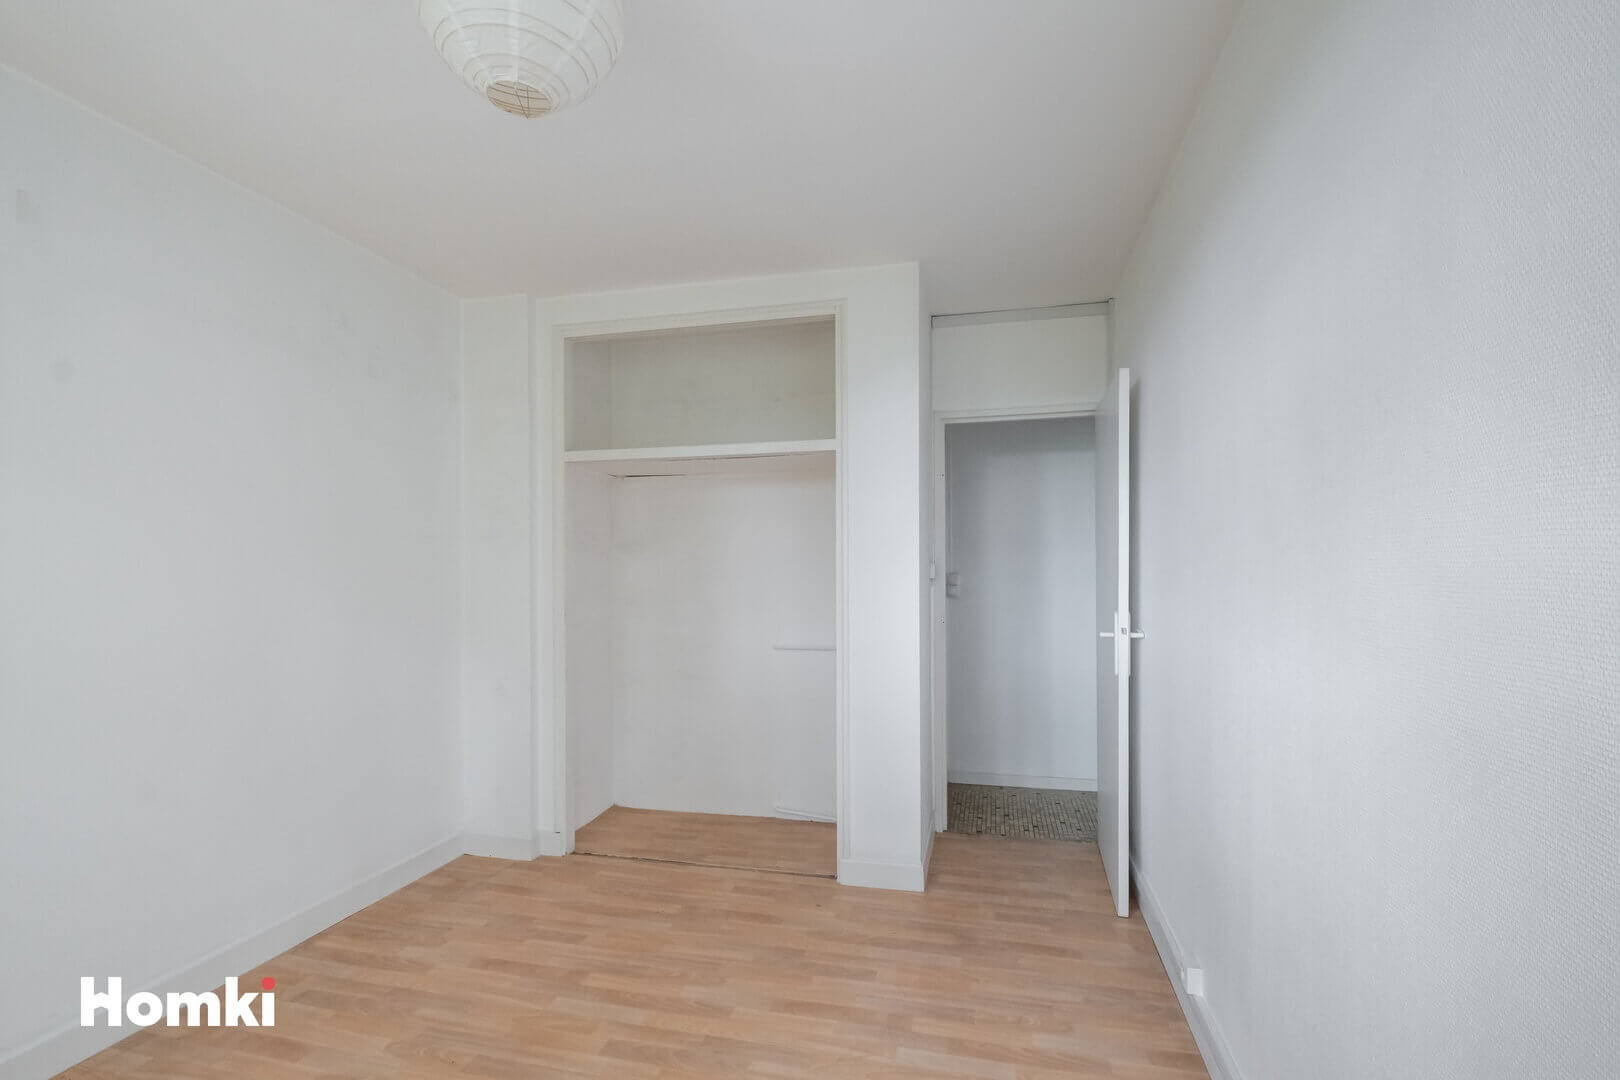 Homki - Vente Appartement  de 34.0 m² à Toulouse 31000